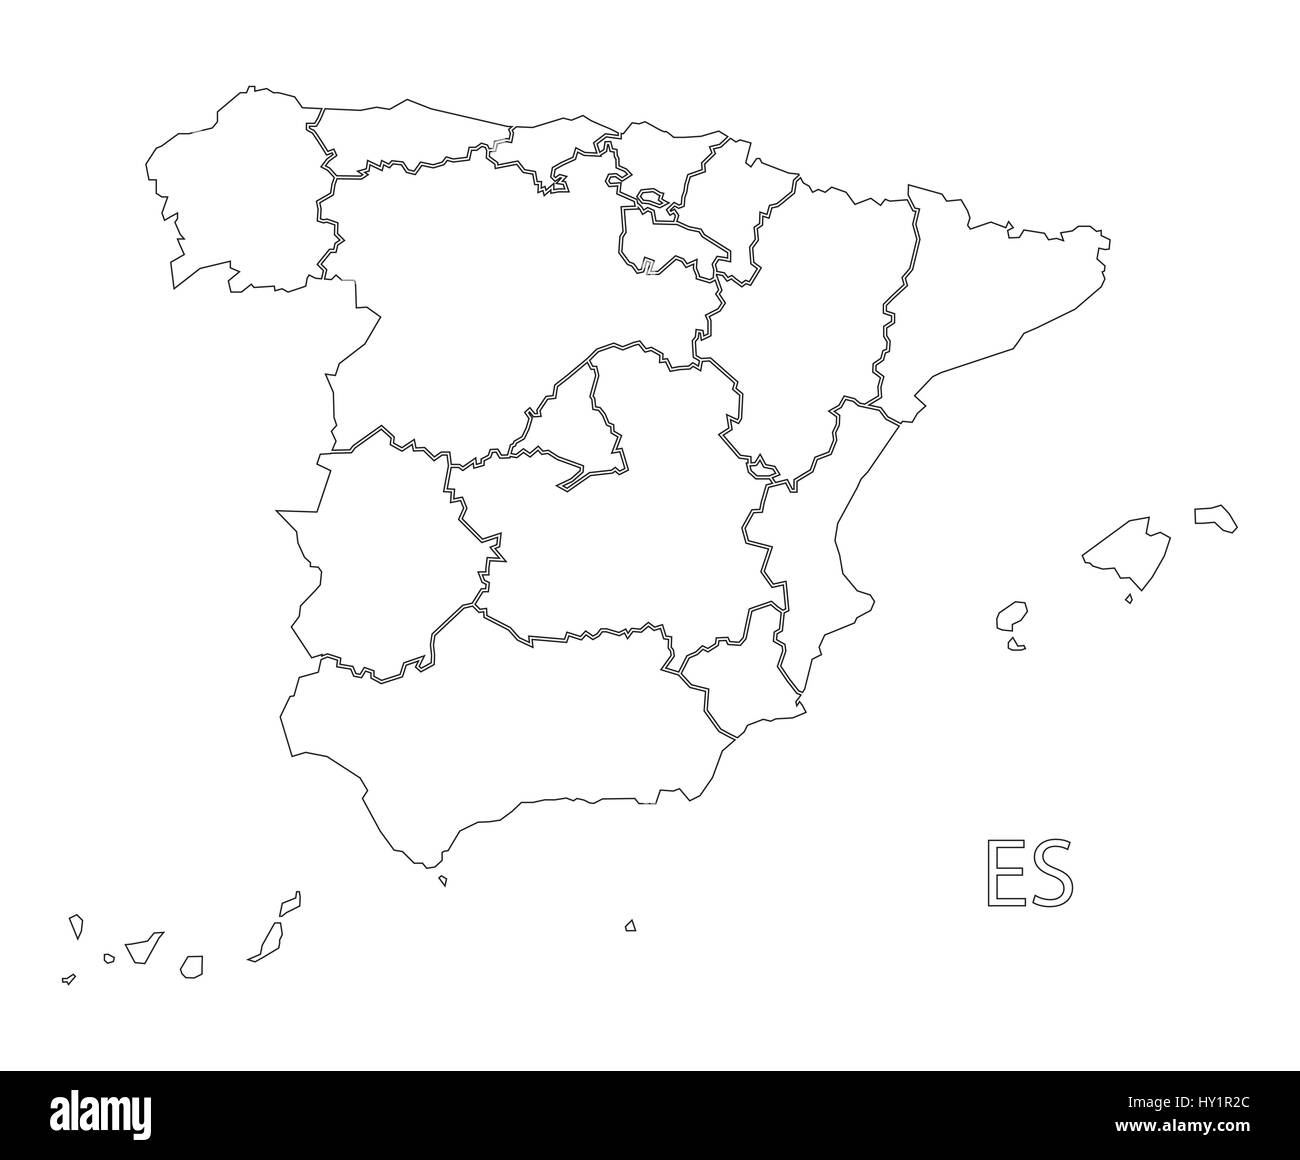 Spain Outline Silhouette Map Illustration With Provinces